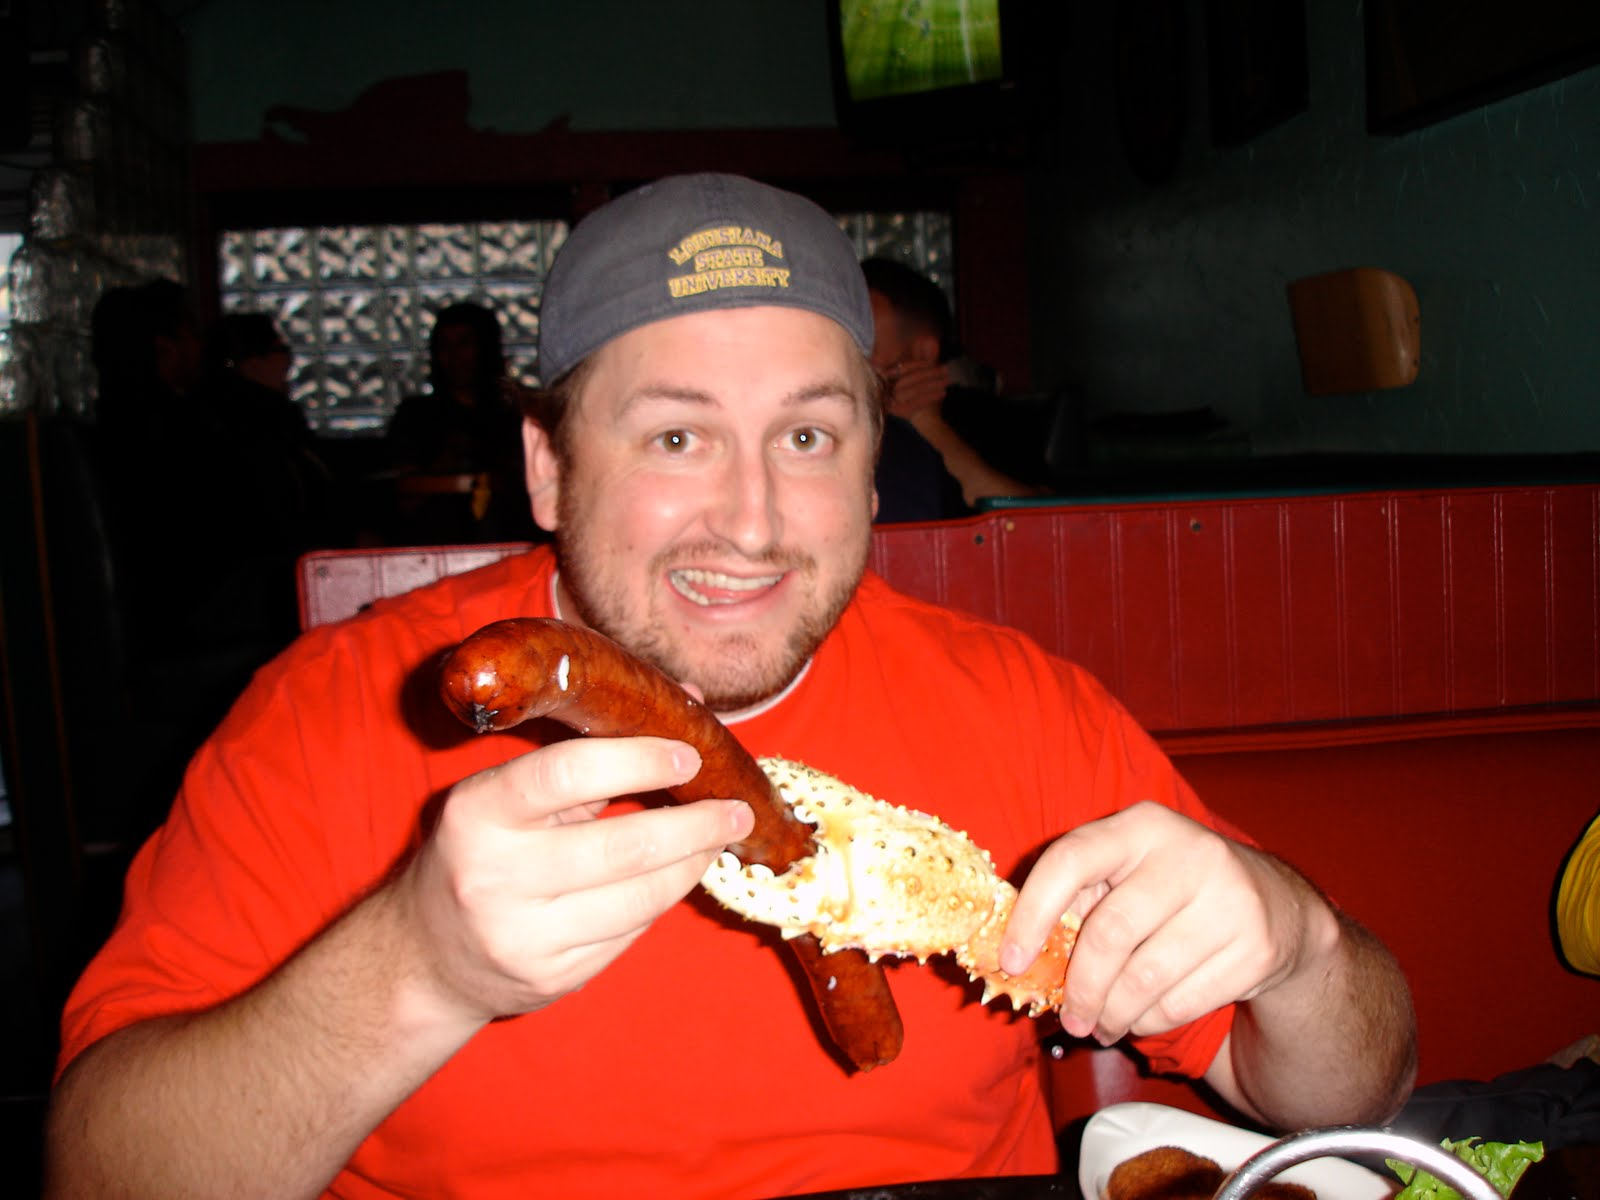 Jay plays with the reindeer sausage and Alaskan King Crab legs during the Kodiak Arrest Challenge